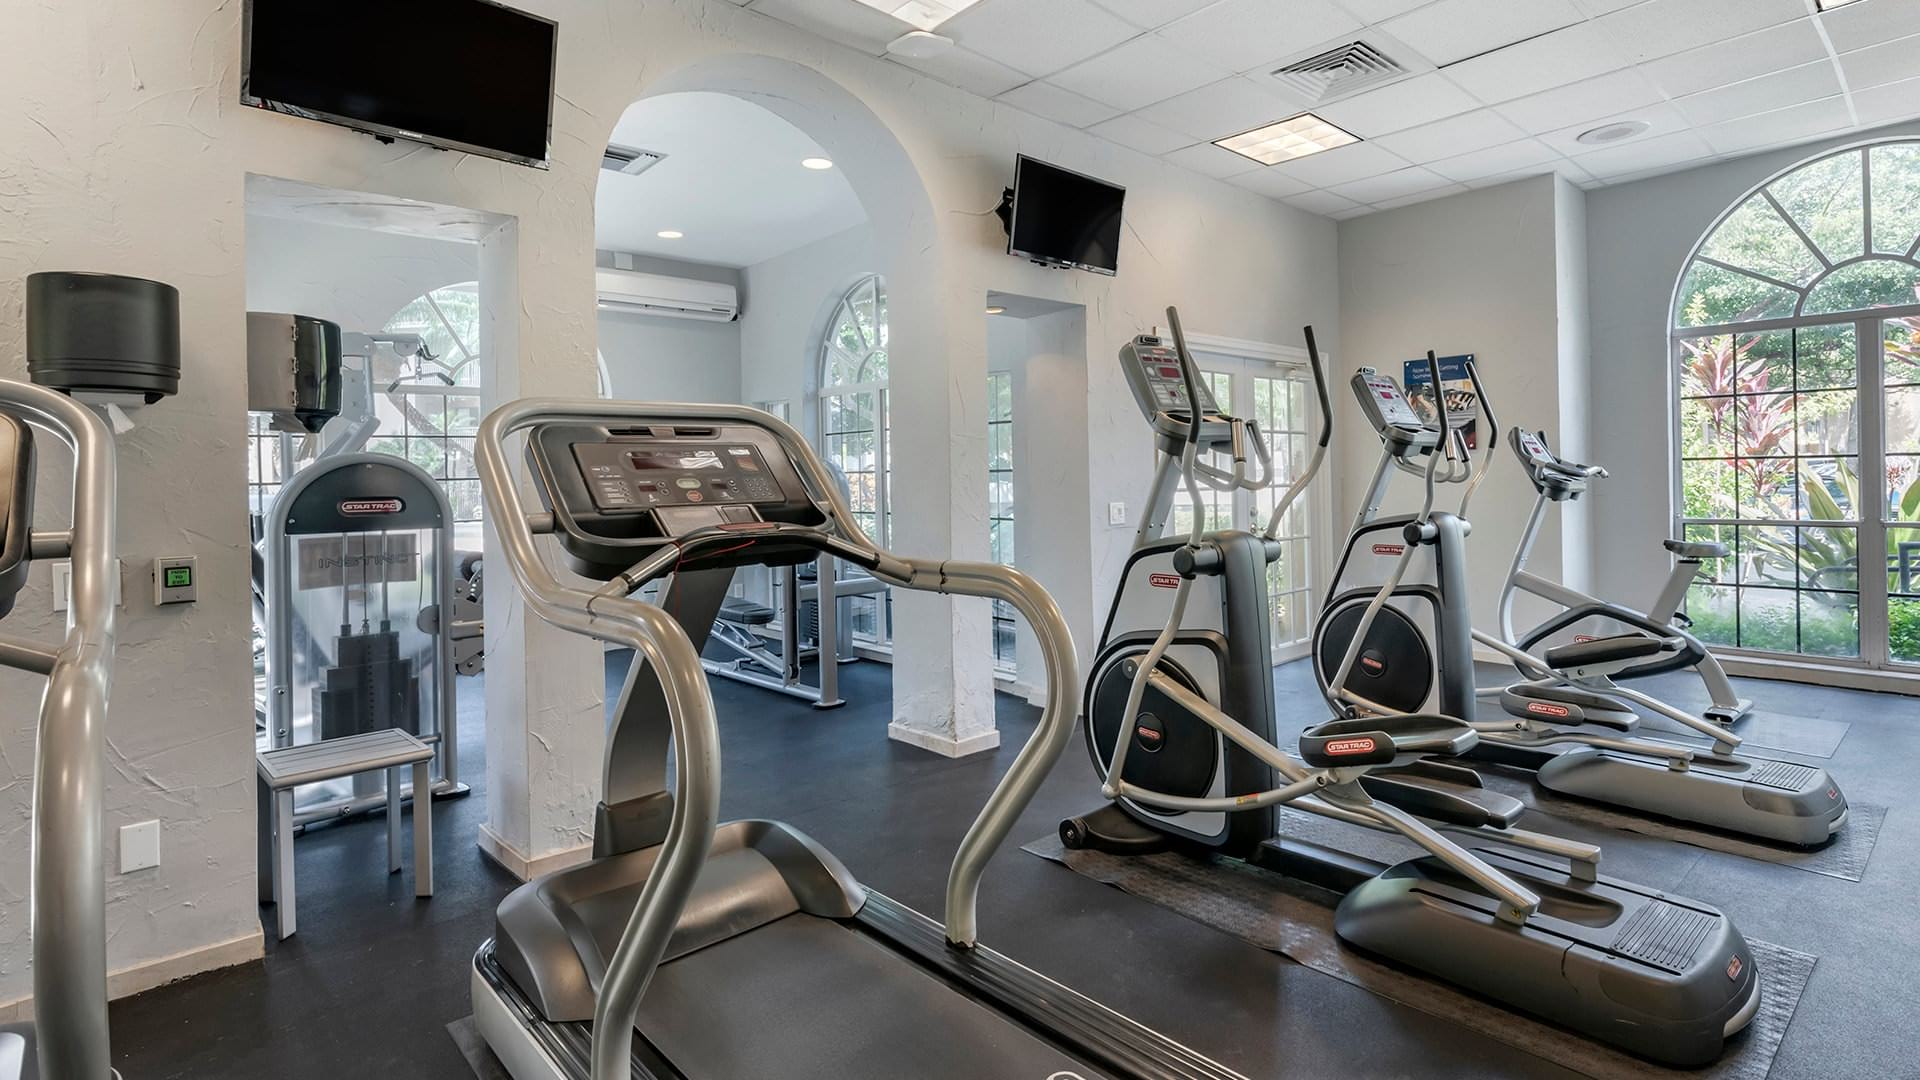 cardio machines in brightly lit fitness center